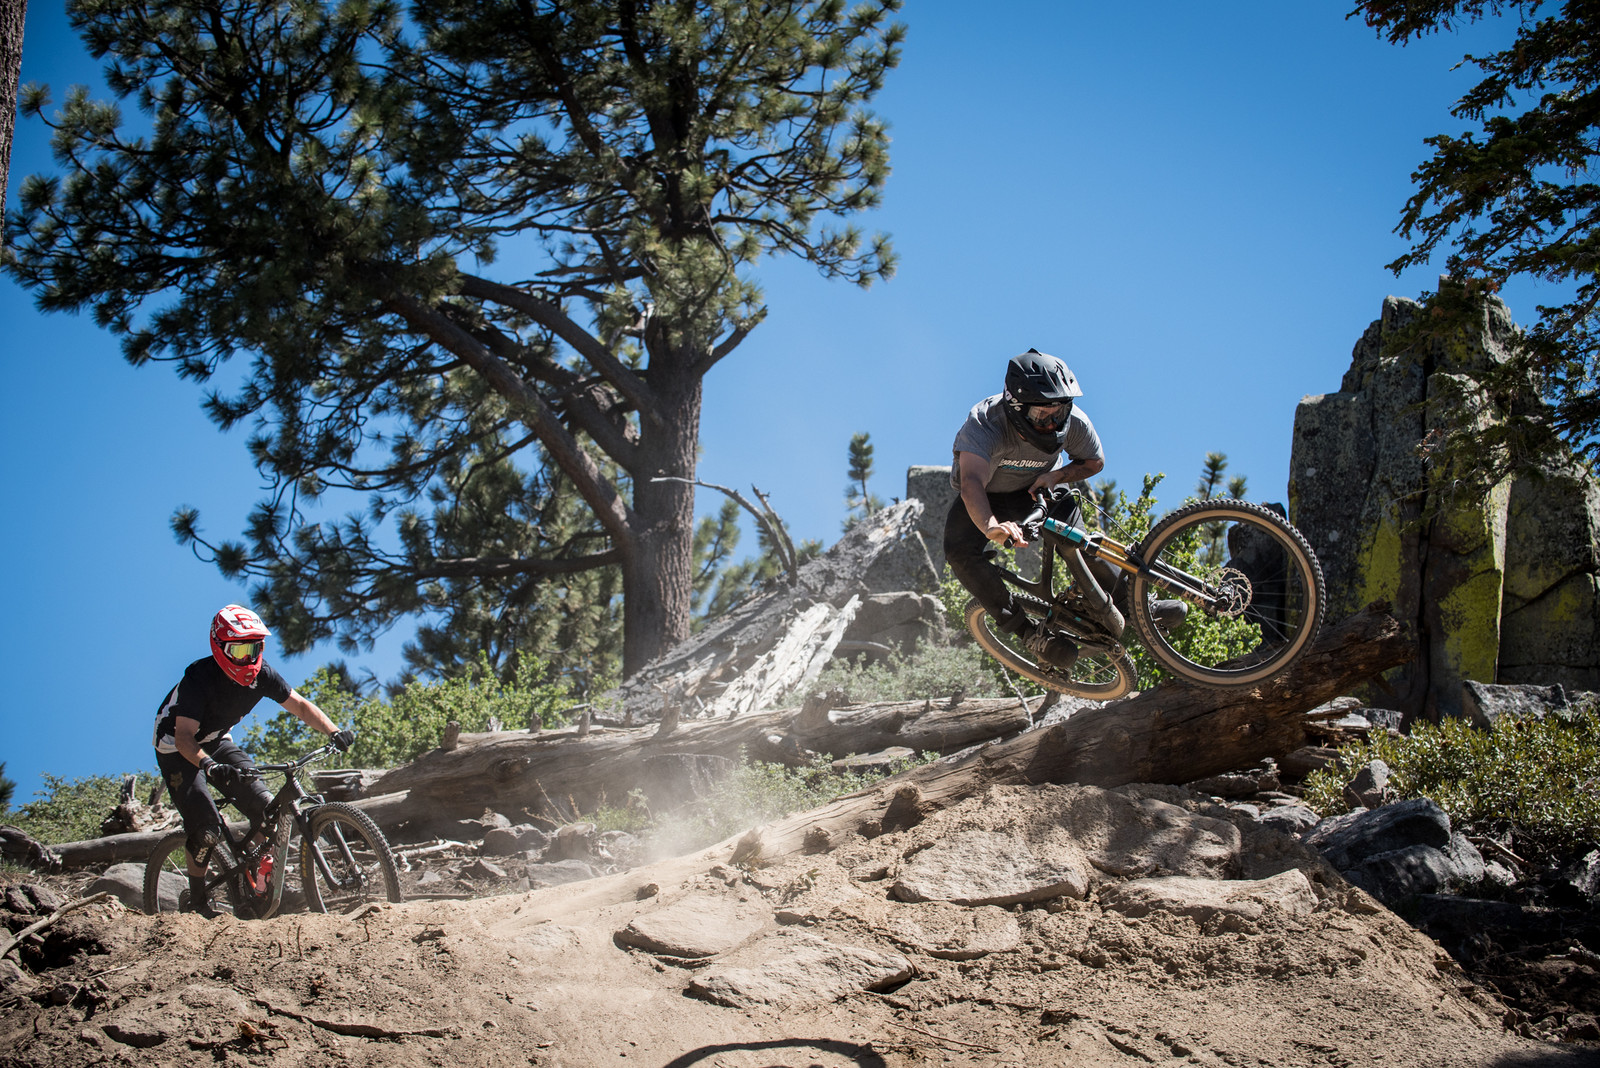 Leading'em In - Vital Ditch Day 2017 at Snow Summit Bike Park - Mountain Biking Pictures - Vital MTB